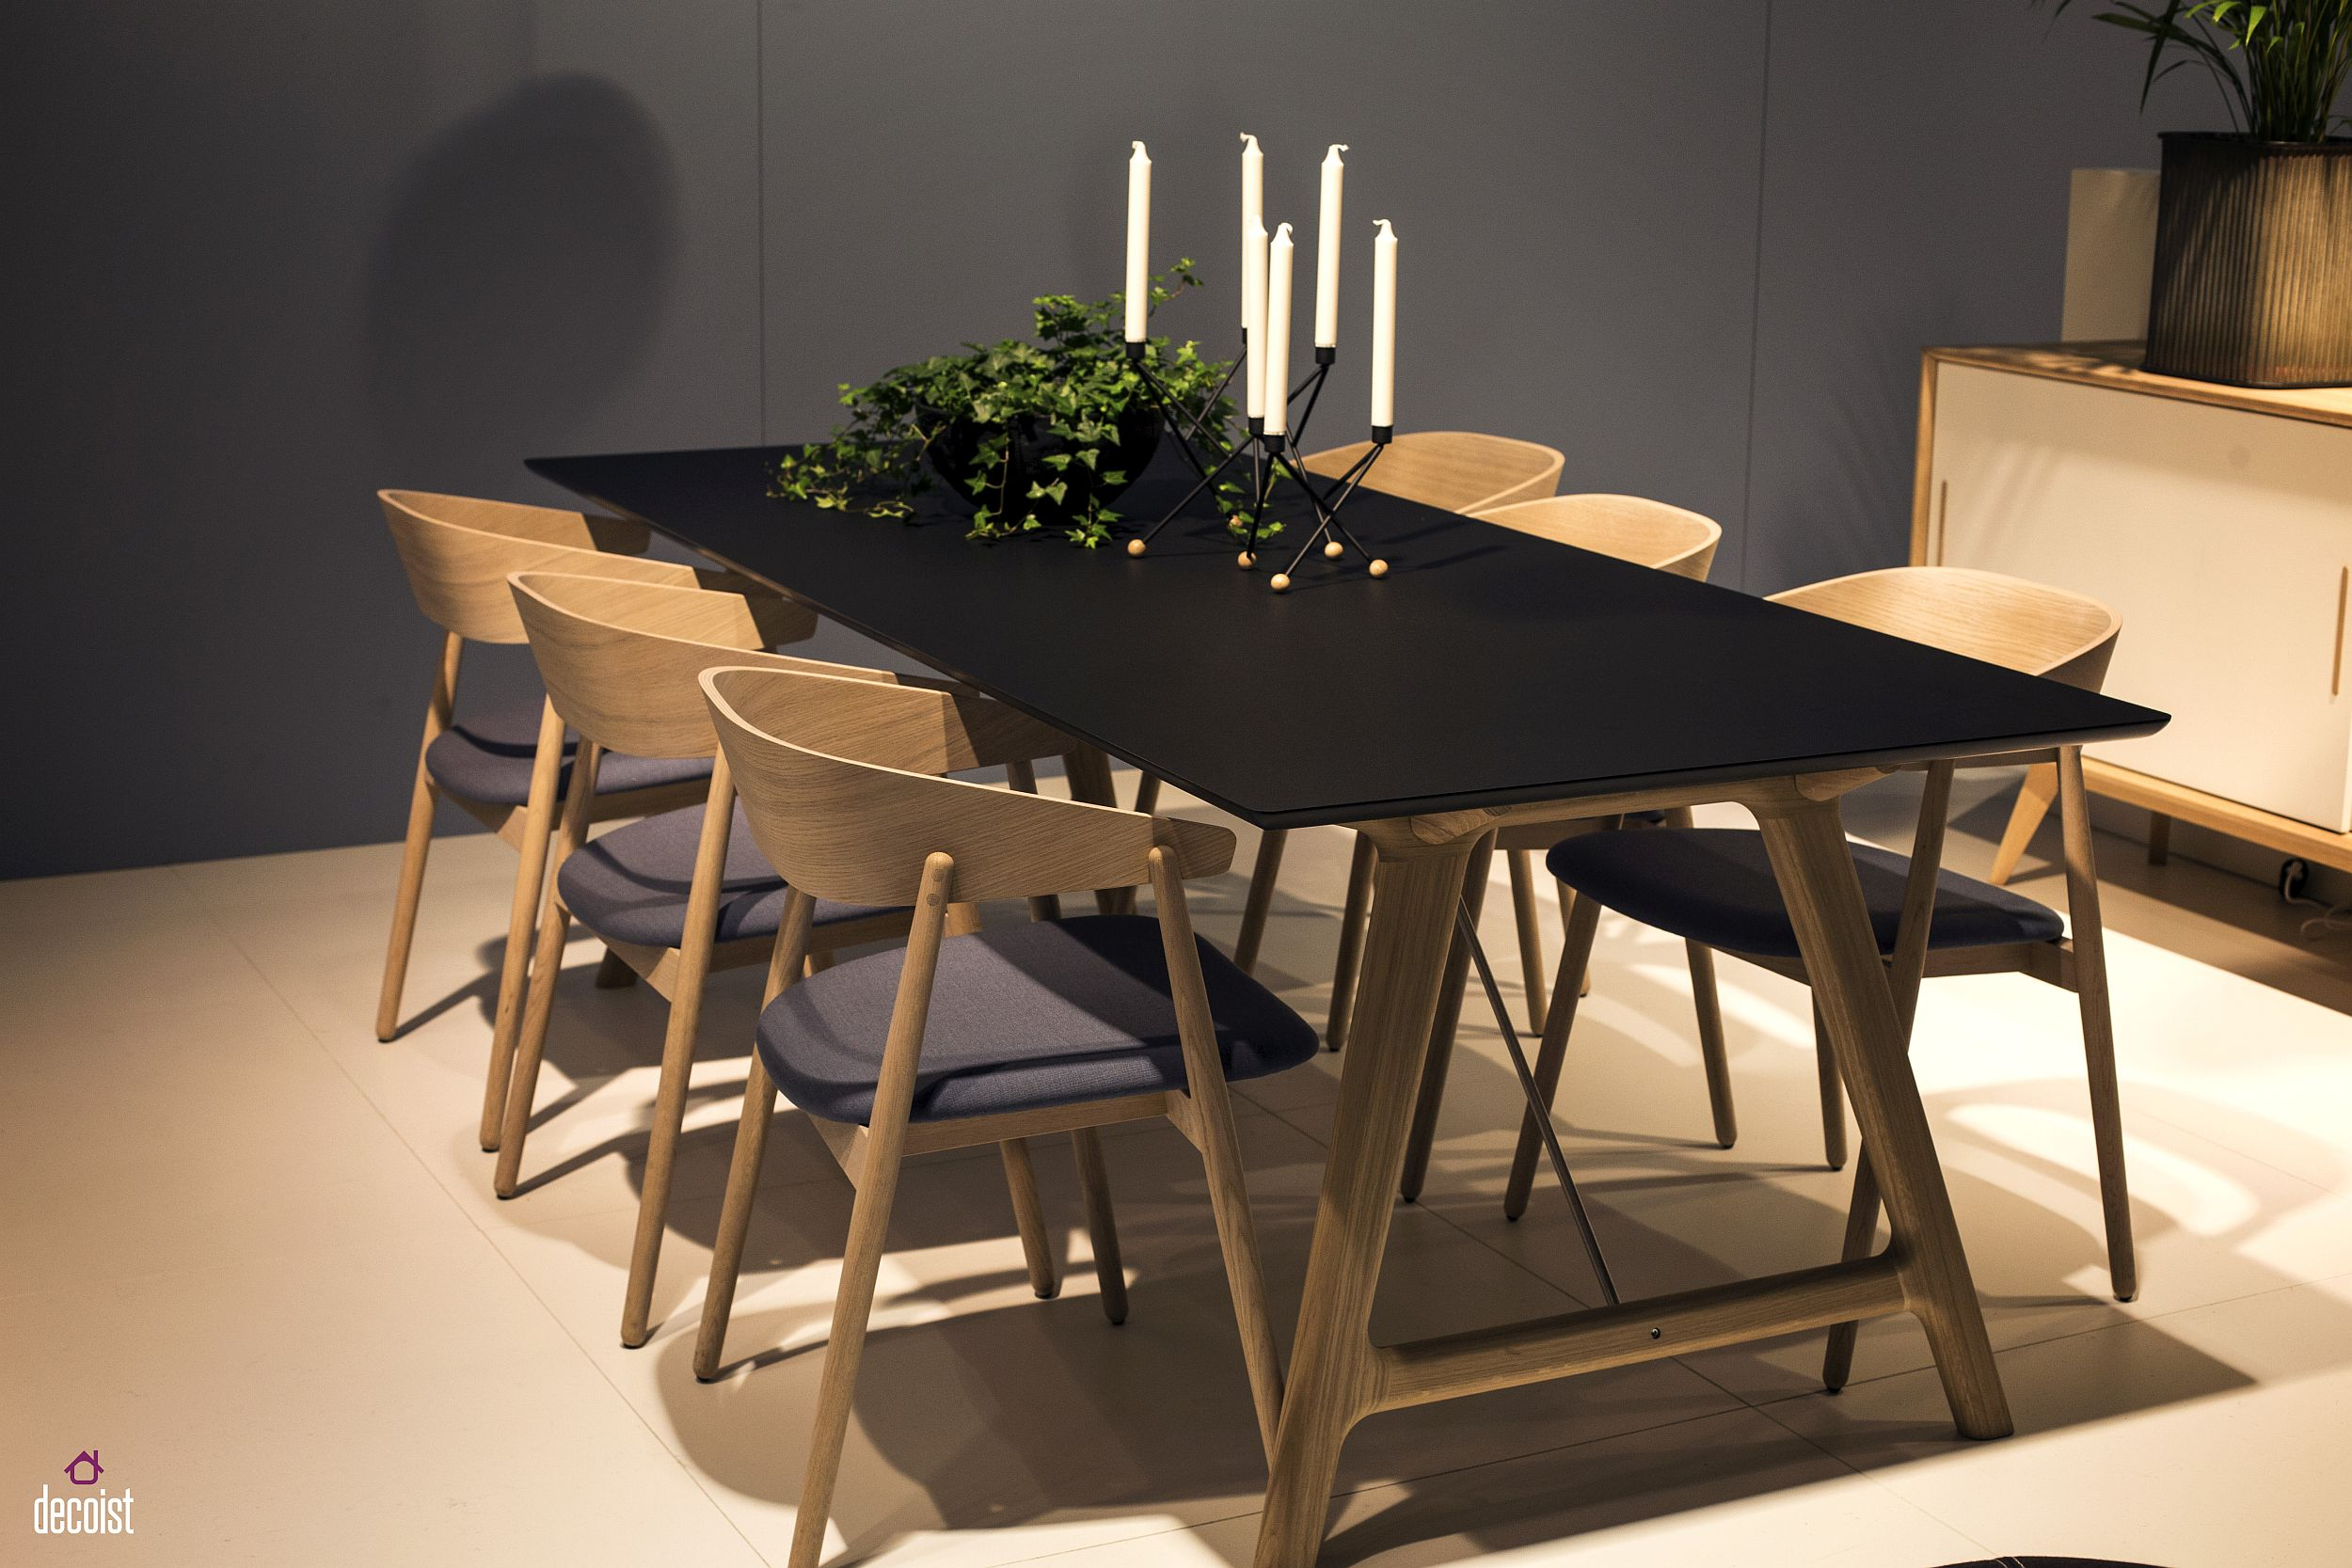 Timber Dining Tables And Chairs A Natural Upgrade 25 Wooden Tables To Brighten Your Dining Room